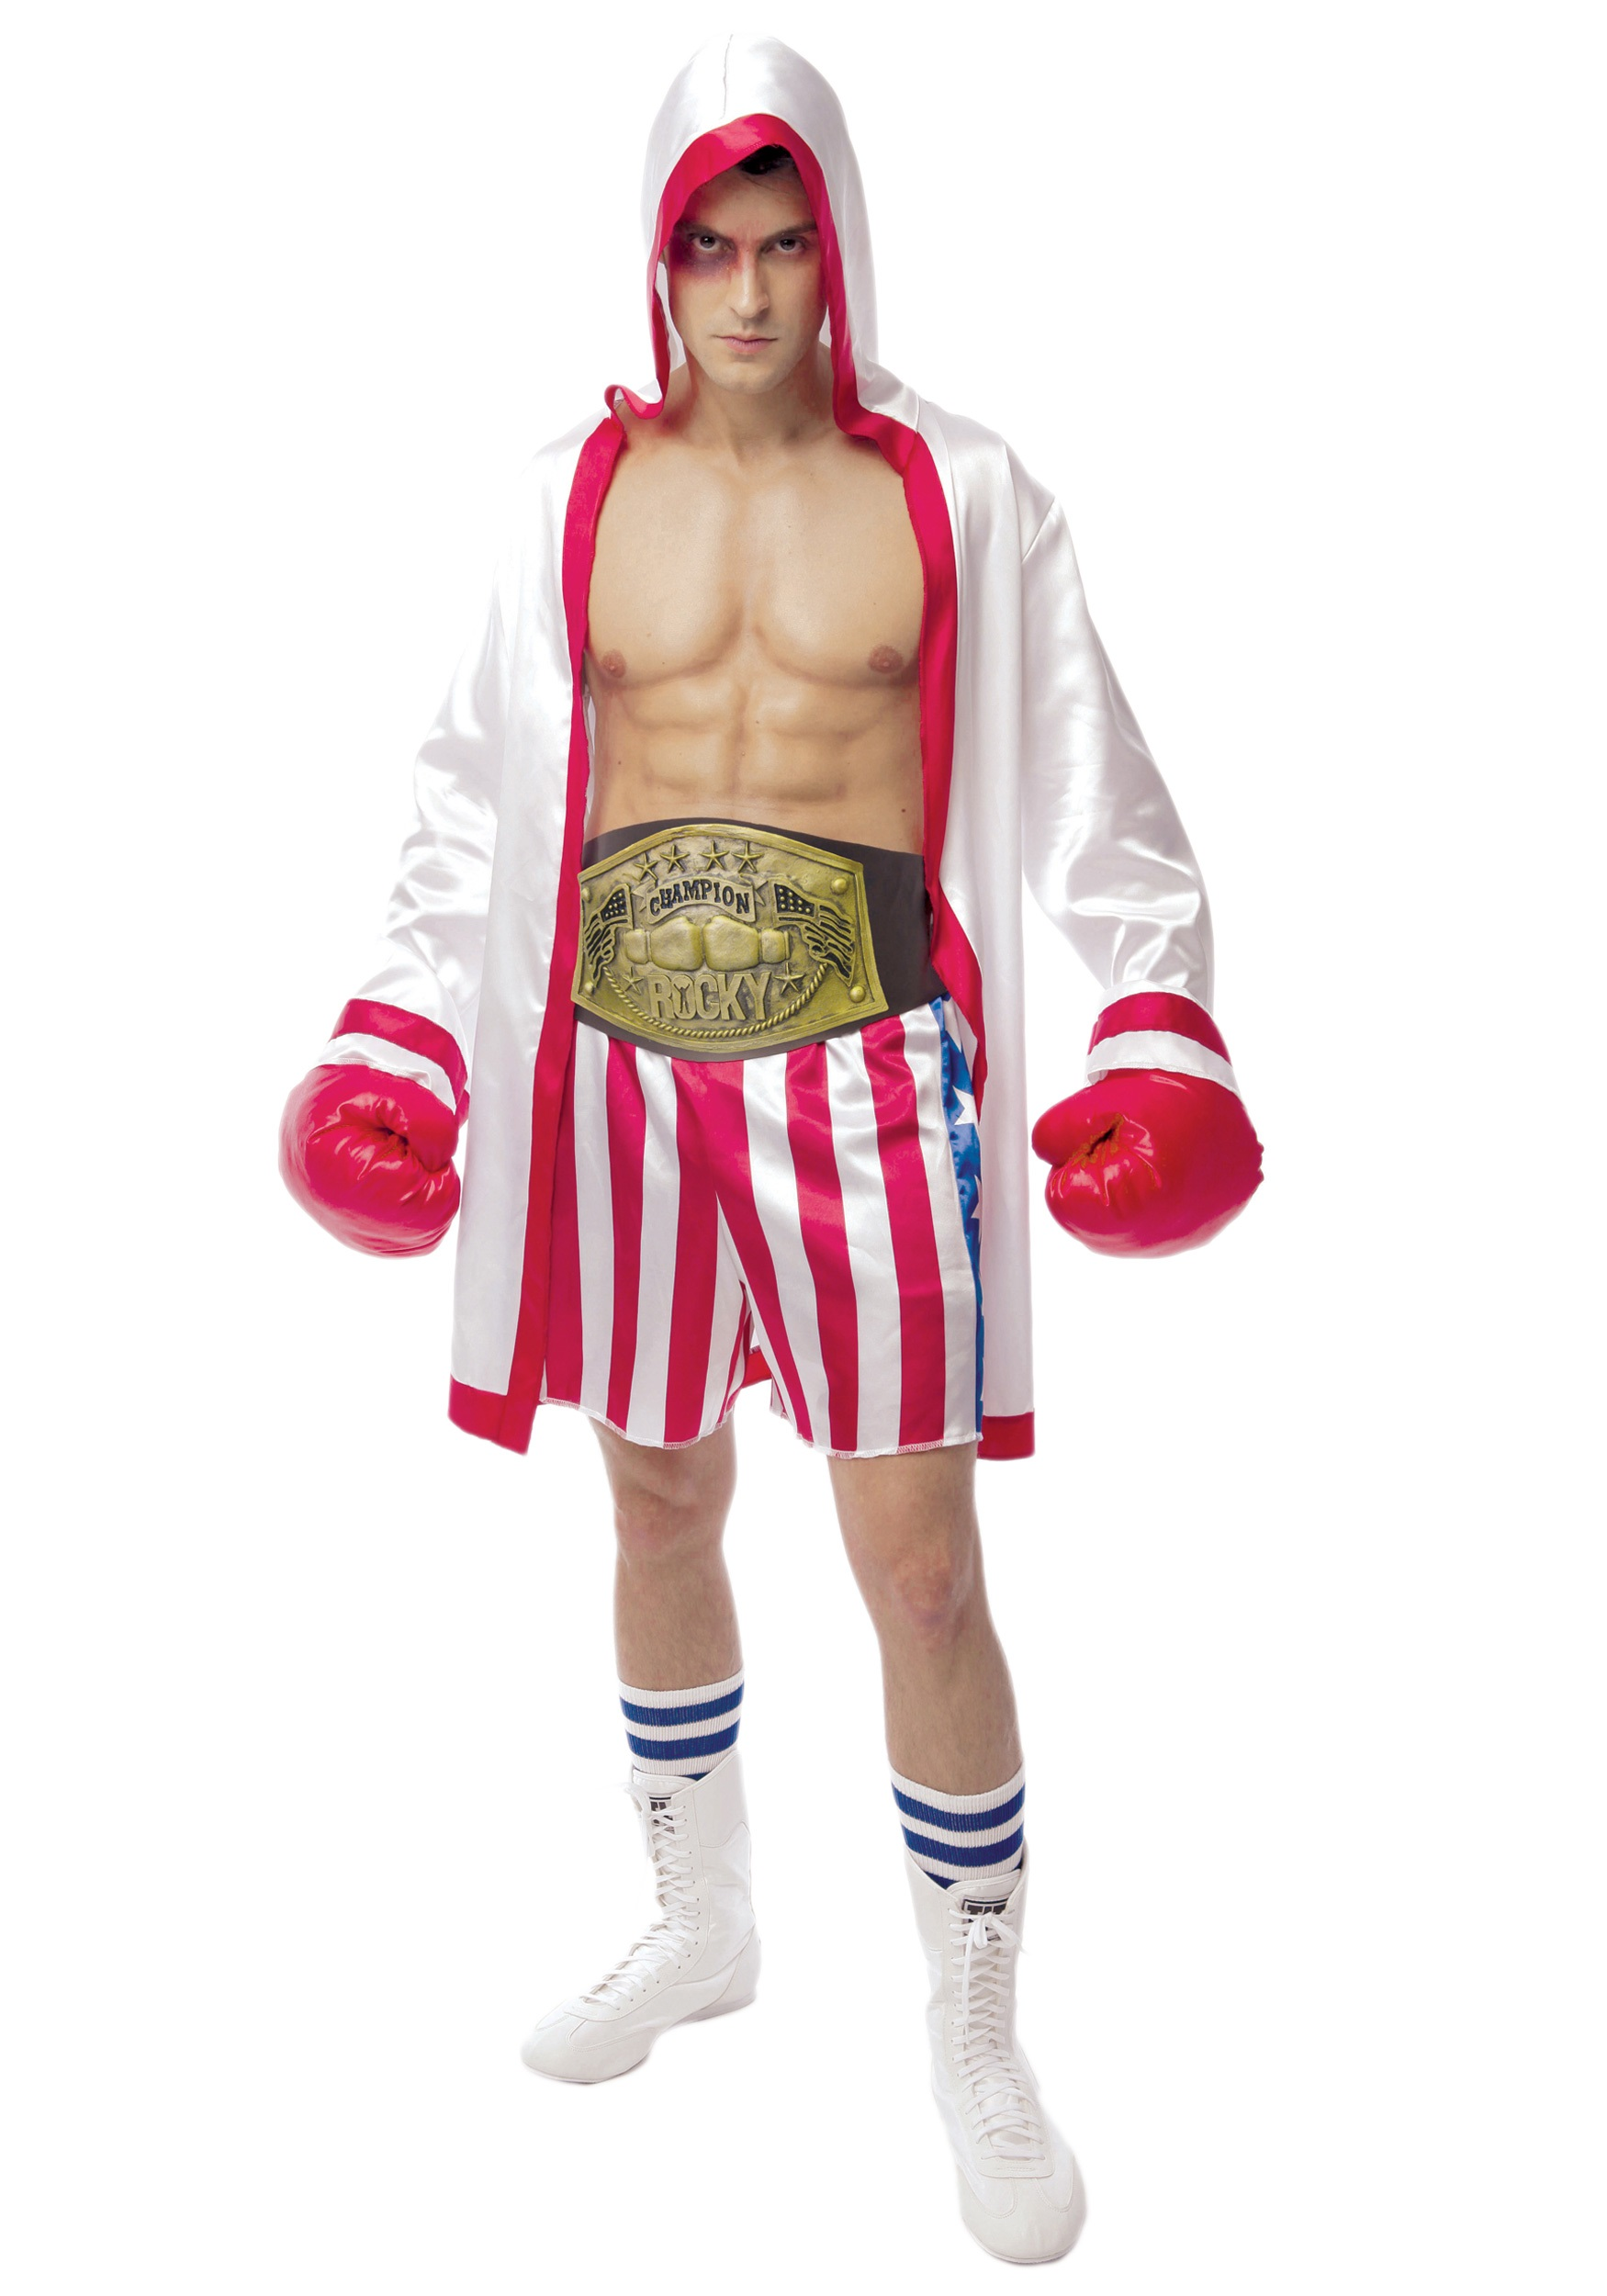 mens rocky costume - halloween costume ideas 2018